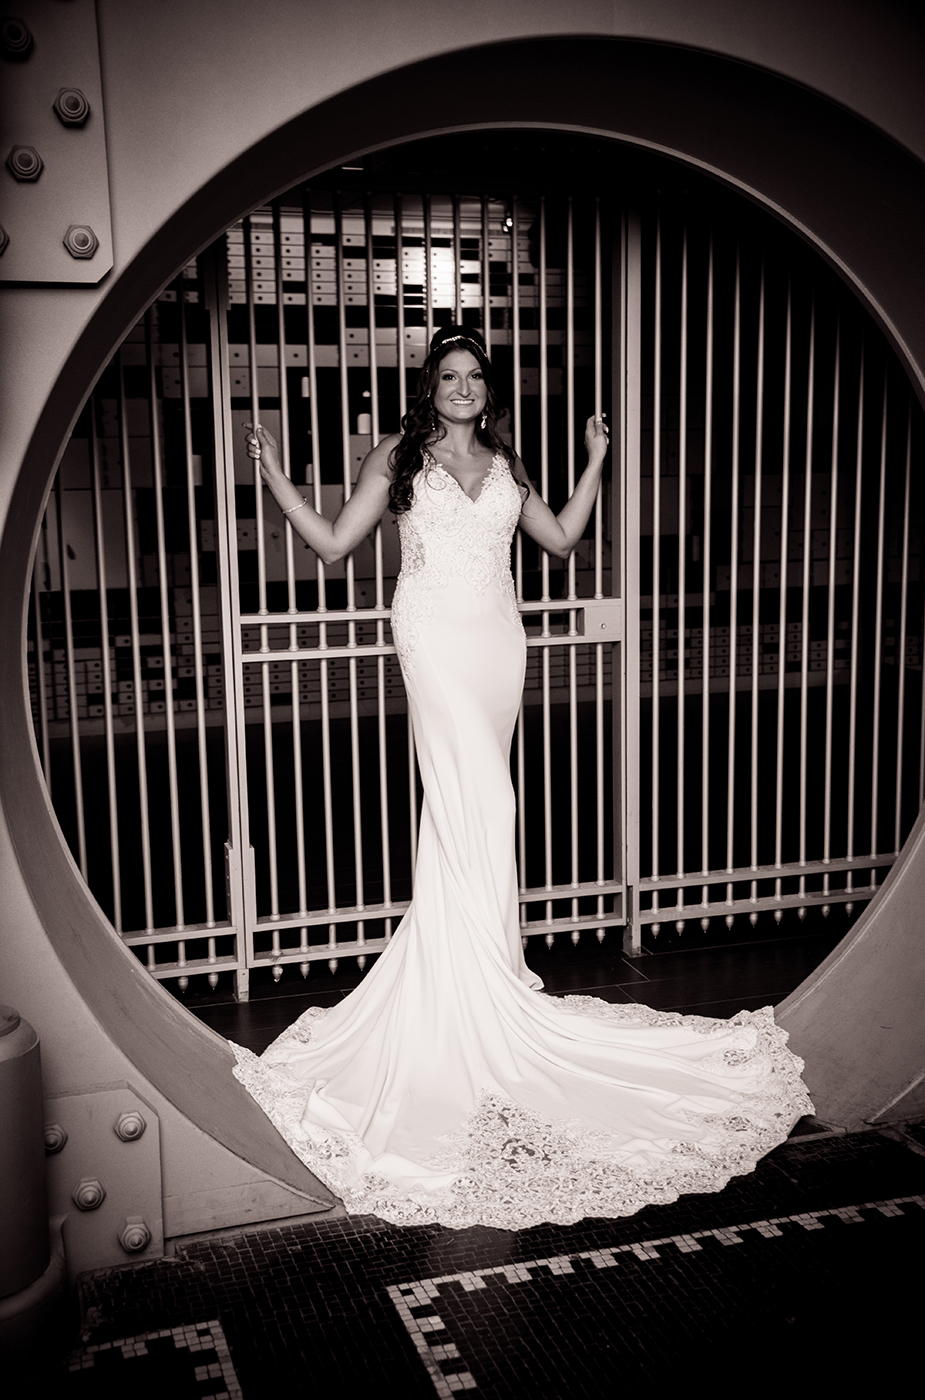 All Occasions Photography Albany NY - Wedding Photography Bride in Bank Vault